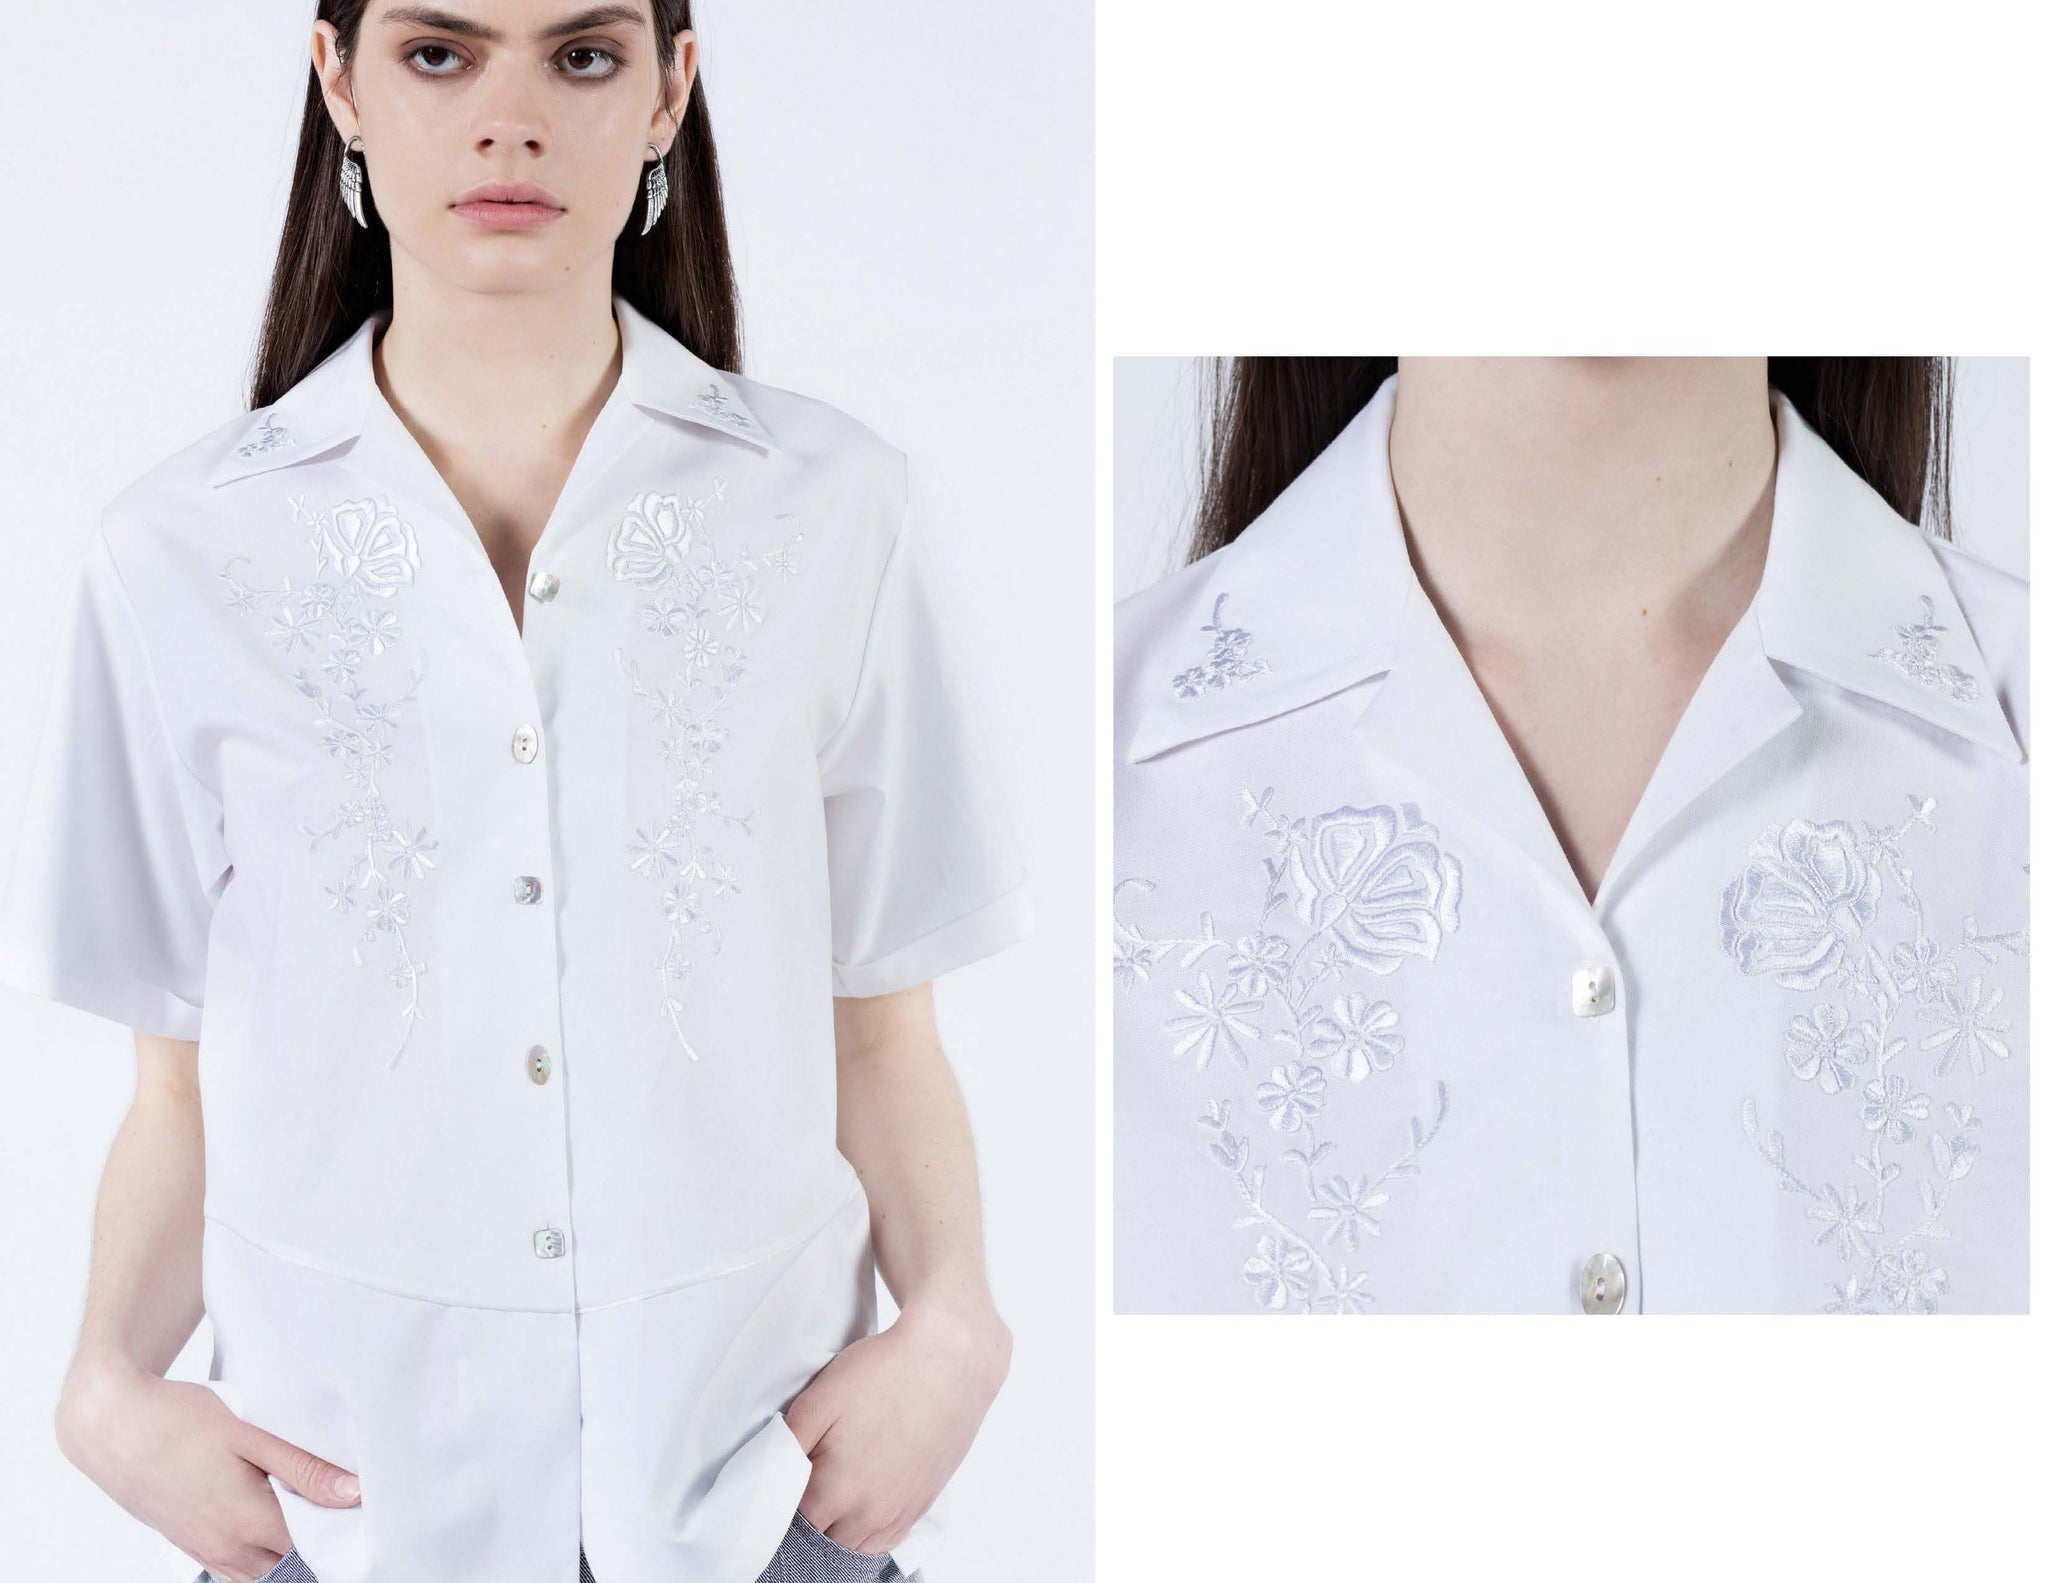 White on white goodness. White floral thread hand embroidered cotton short sleeve button up shirt with iridescent shell buttons.